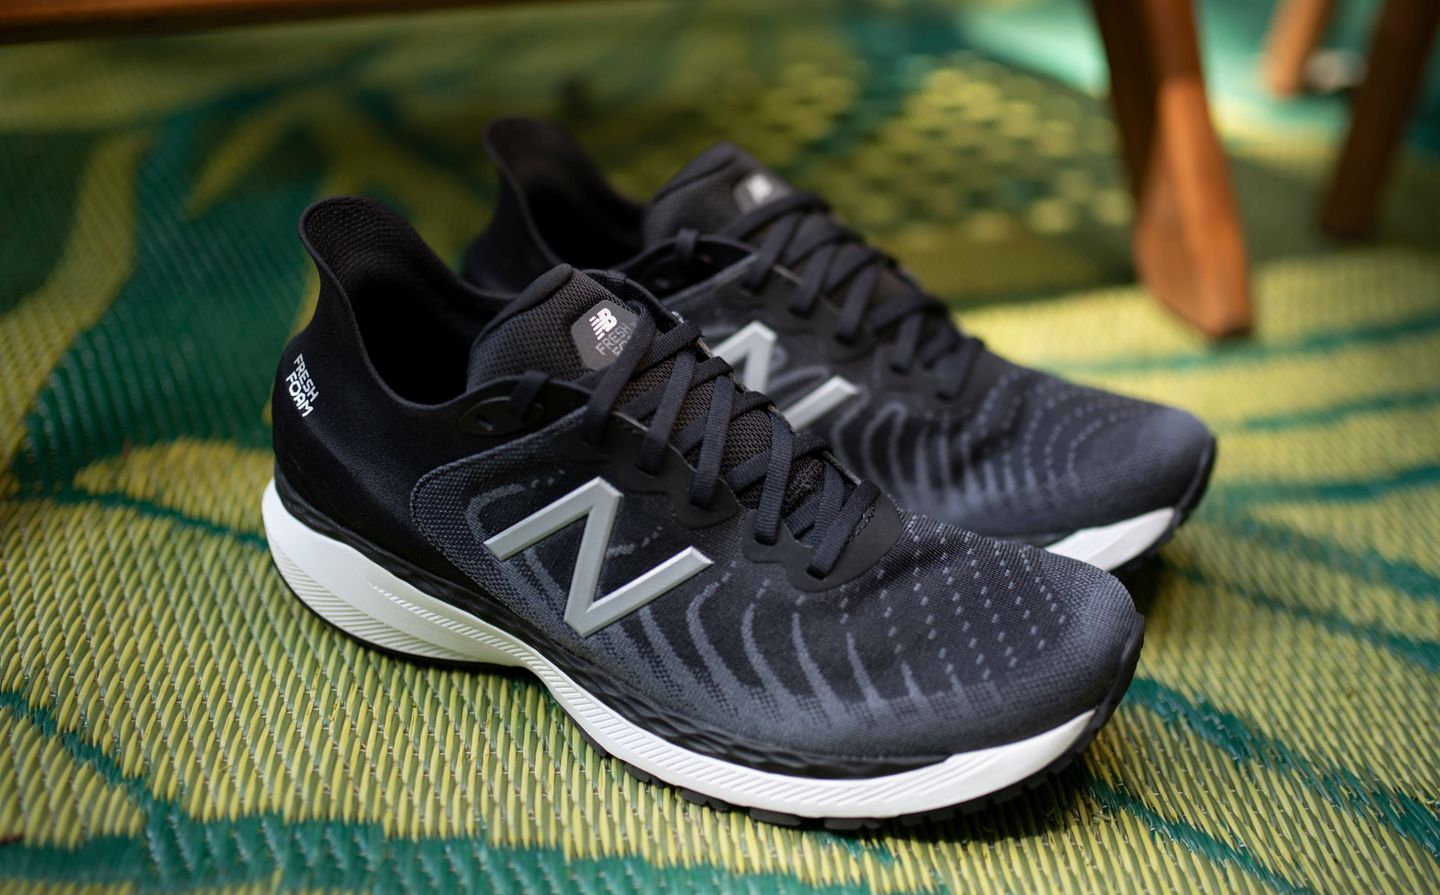 Best Stability Running Shoes 2021 | Buyer's Guide